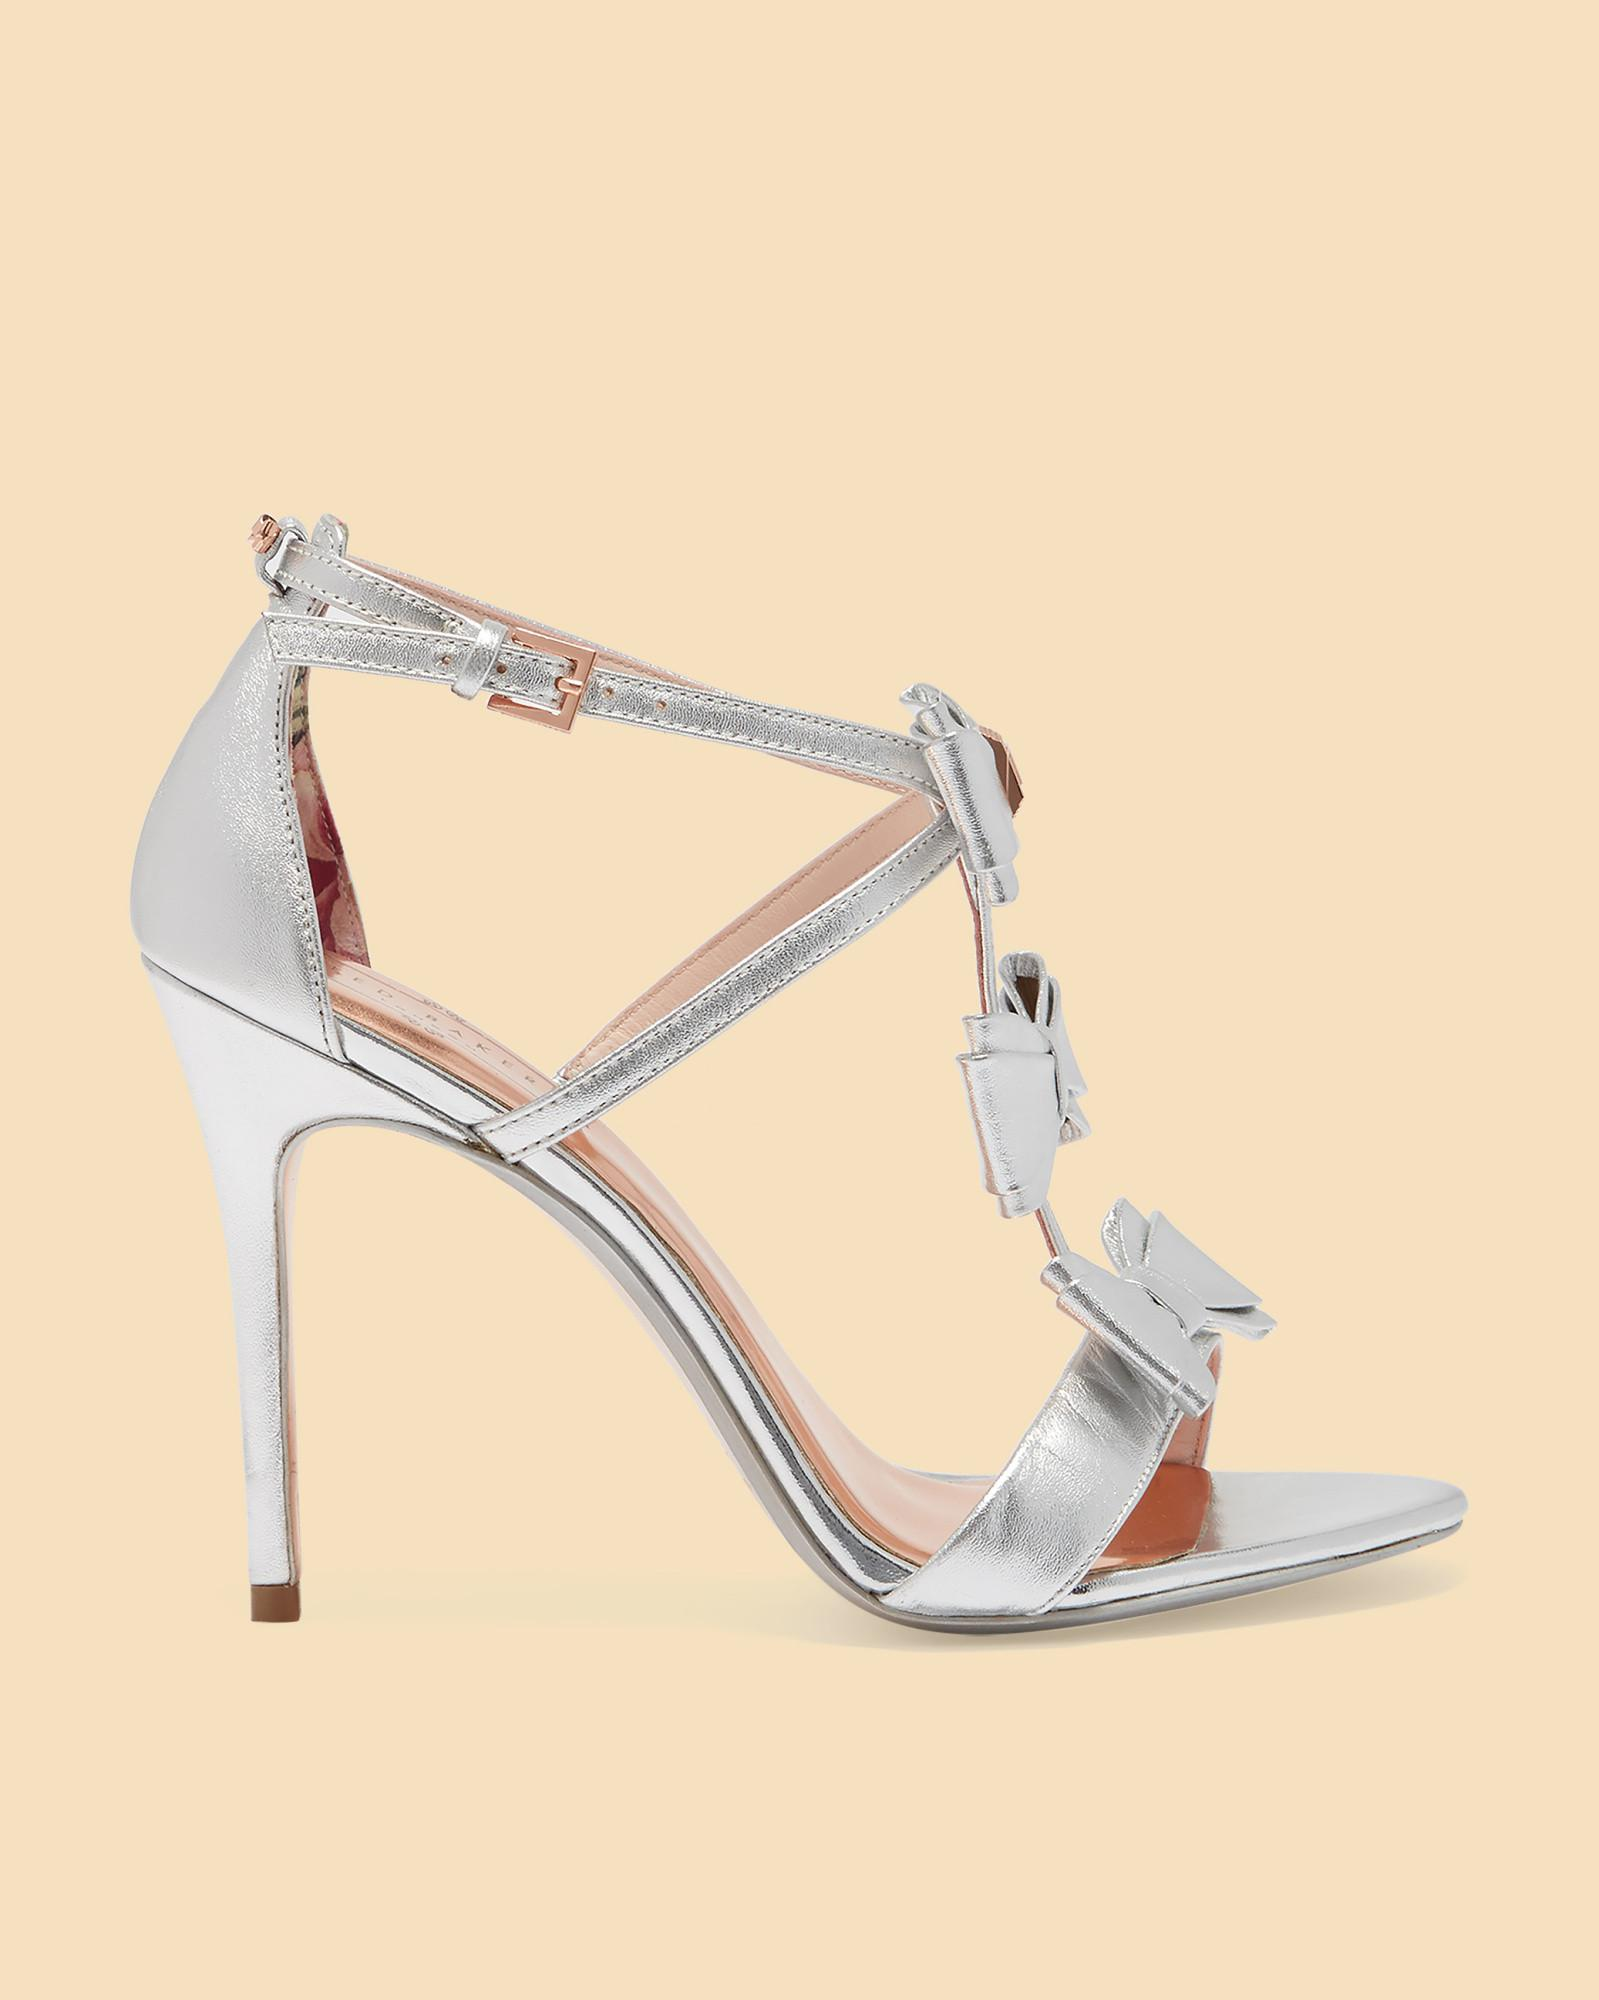 5a85862839cb Lyst - Ted Baker Triple Bow Detail Heeled Sandals